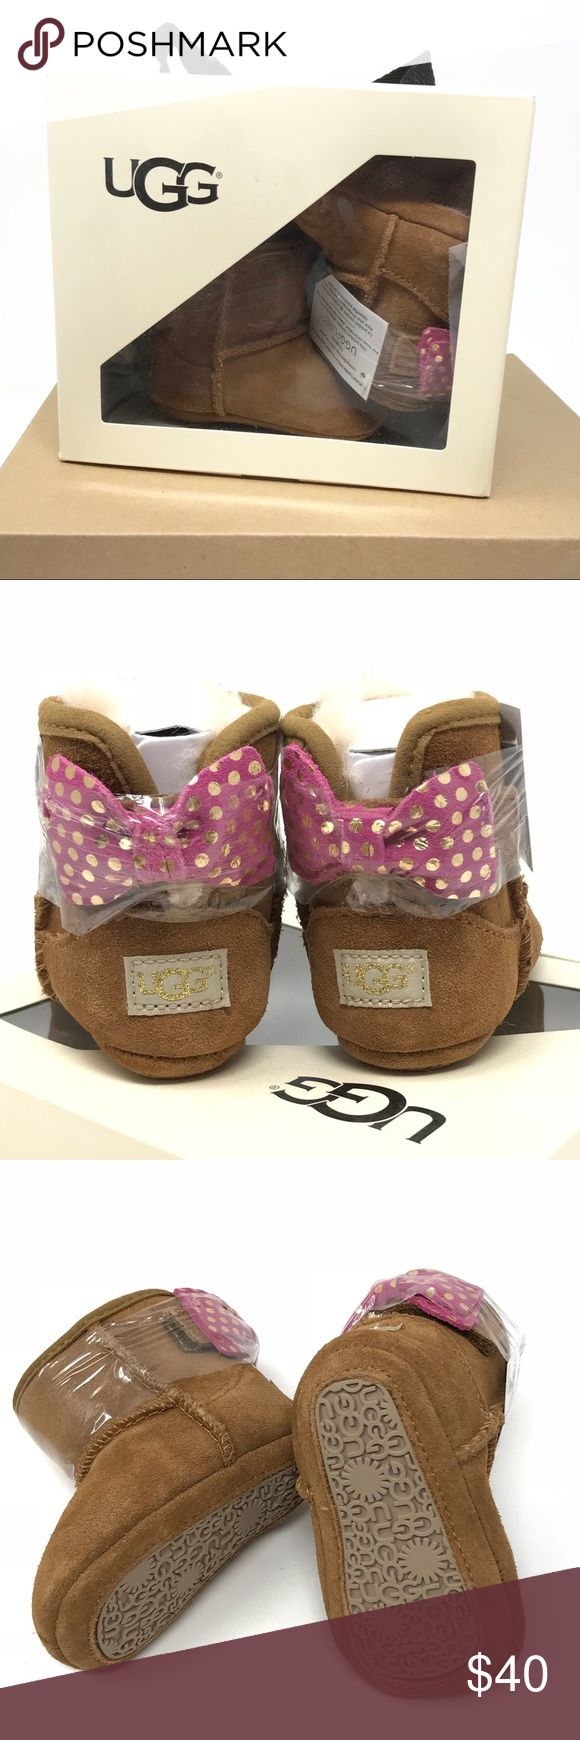 Baby UGG 'Jesse II Bow Boot' (0 - 6 months) Adorable grosgrain-ribbon bows accent an ultrasoft suede bootie that will keep your little one's feet warm and toasty.   🔹Soft, cozy lining is made from plush UGGpure, a textile made entirely from wool but engineered to feel and 🔹Velcro back closure 🔹Suede upper/UGGpure wool lining/rubber sole 🔹Raving reviews! sold out at Nordstrom  🚫Trades UGG Shoes Baby & Walker